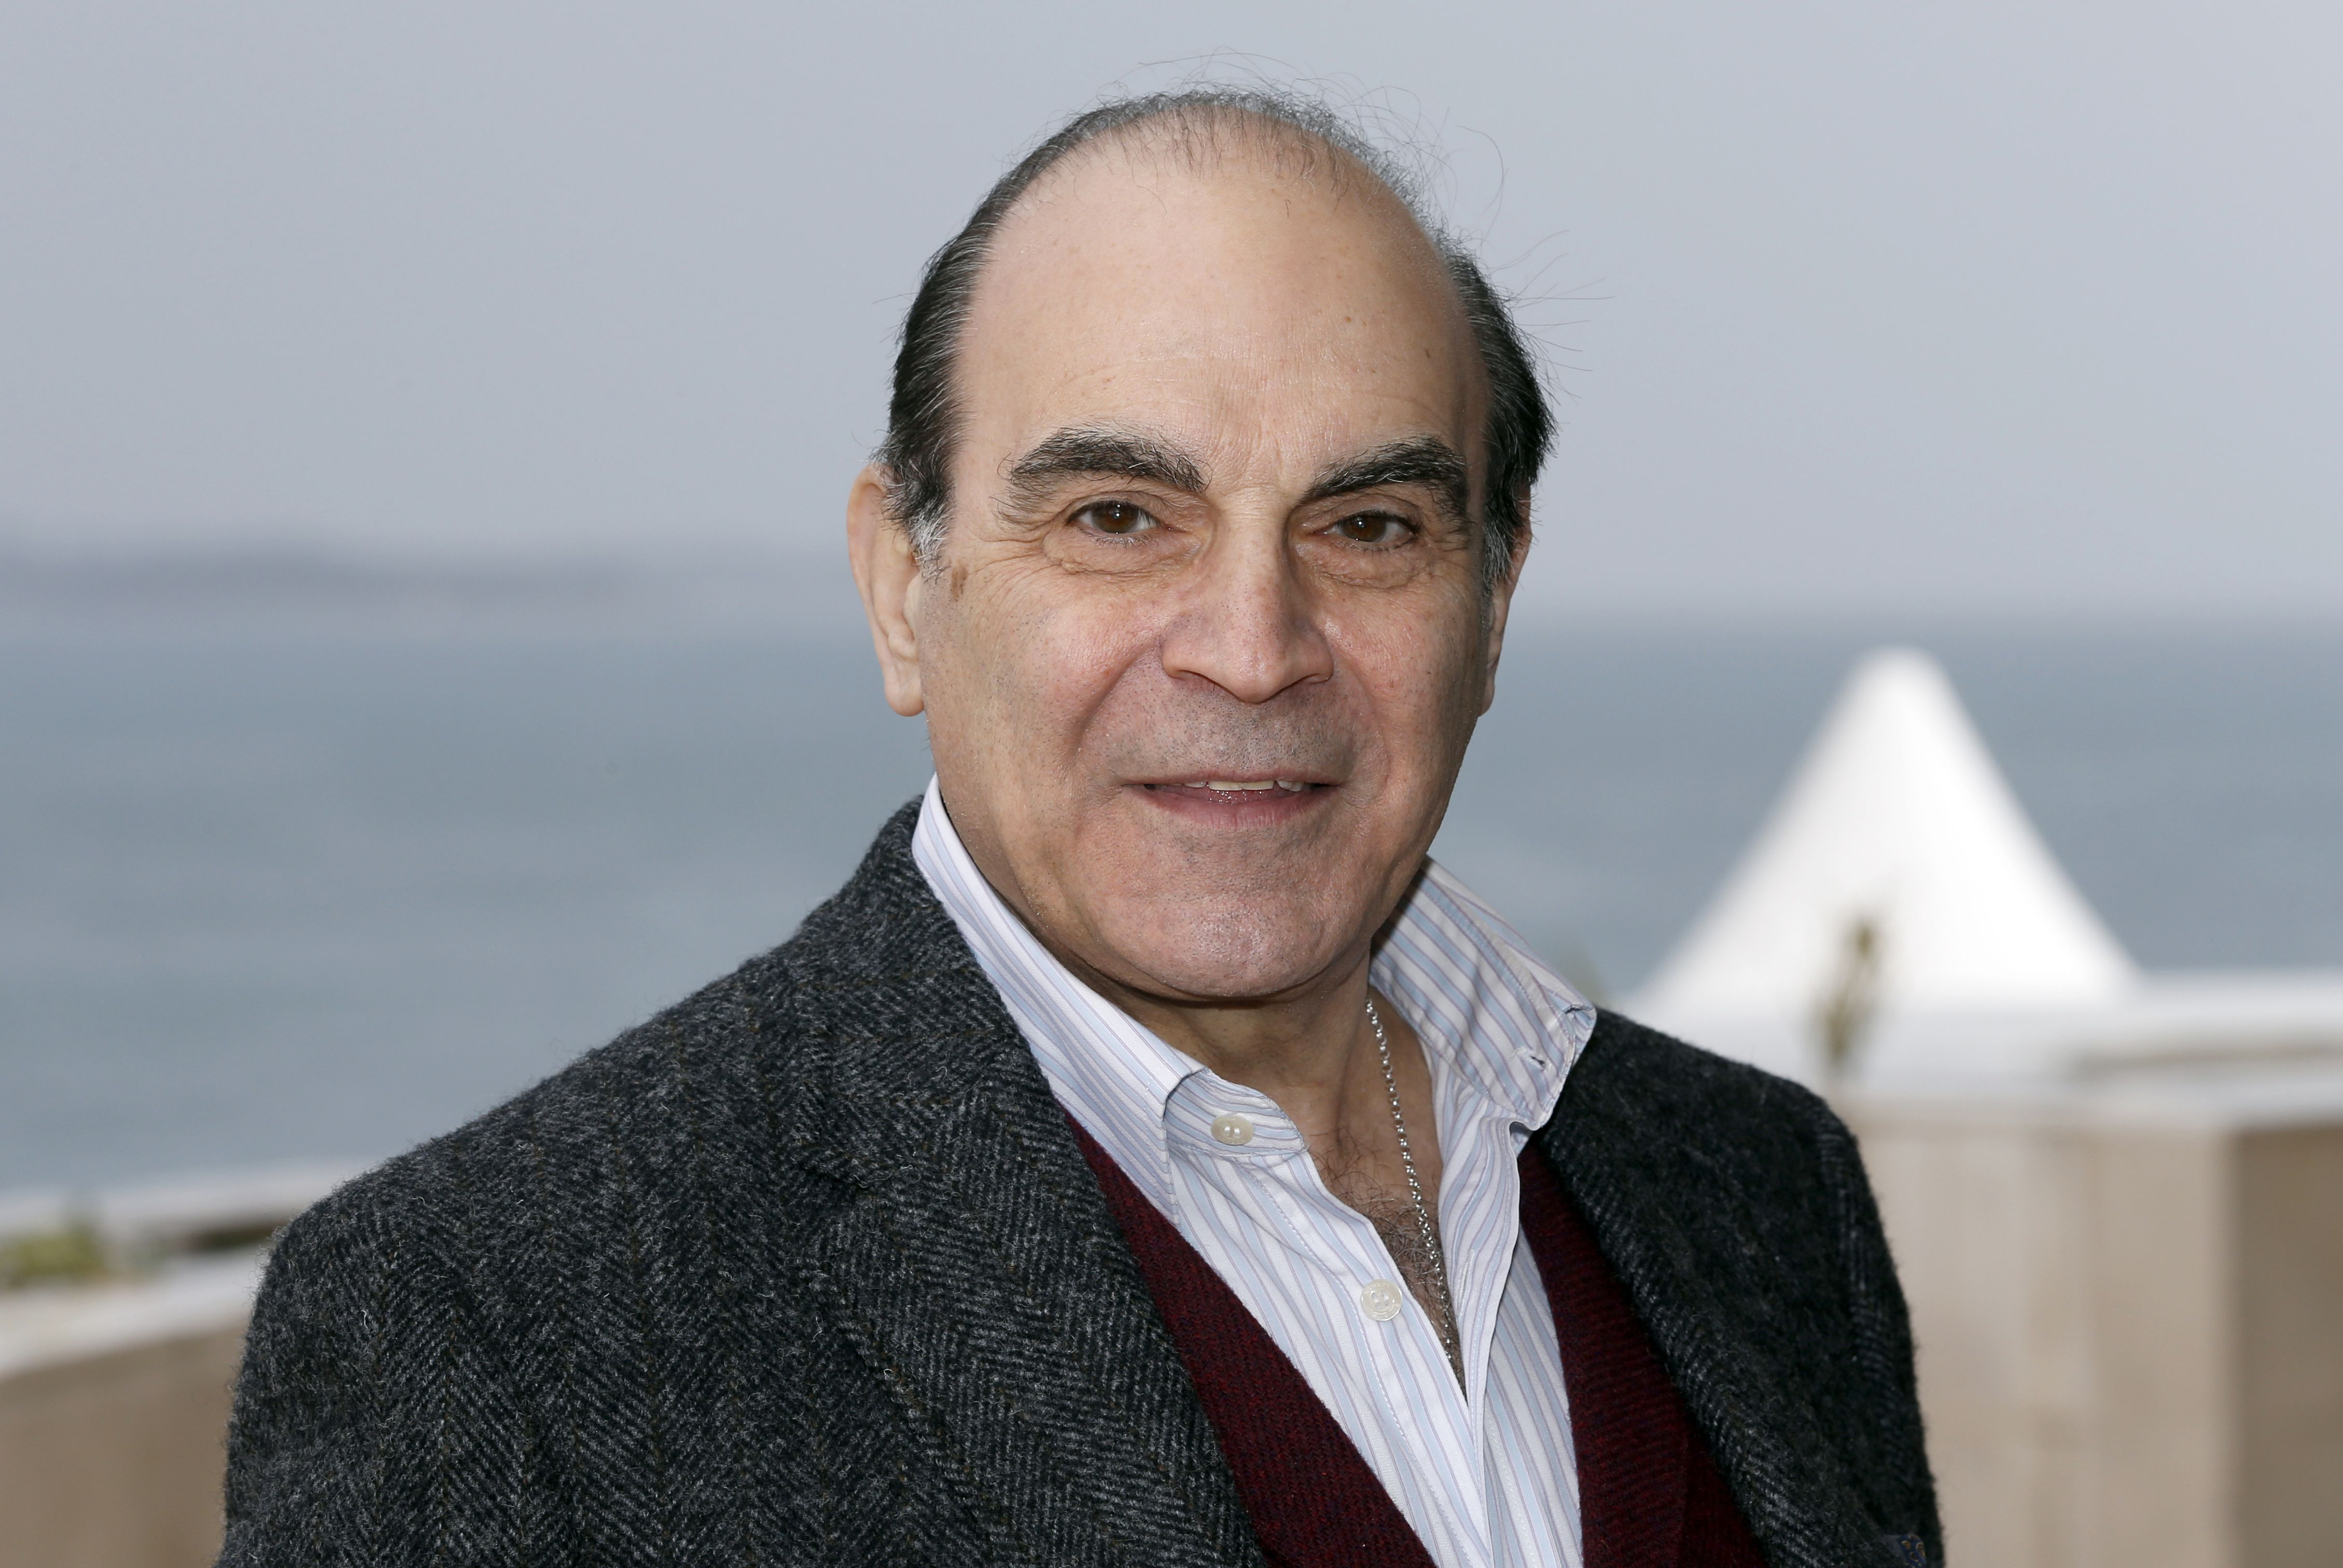 Poirot hits 100: looking back over the singular detective's long career